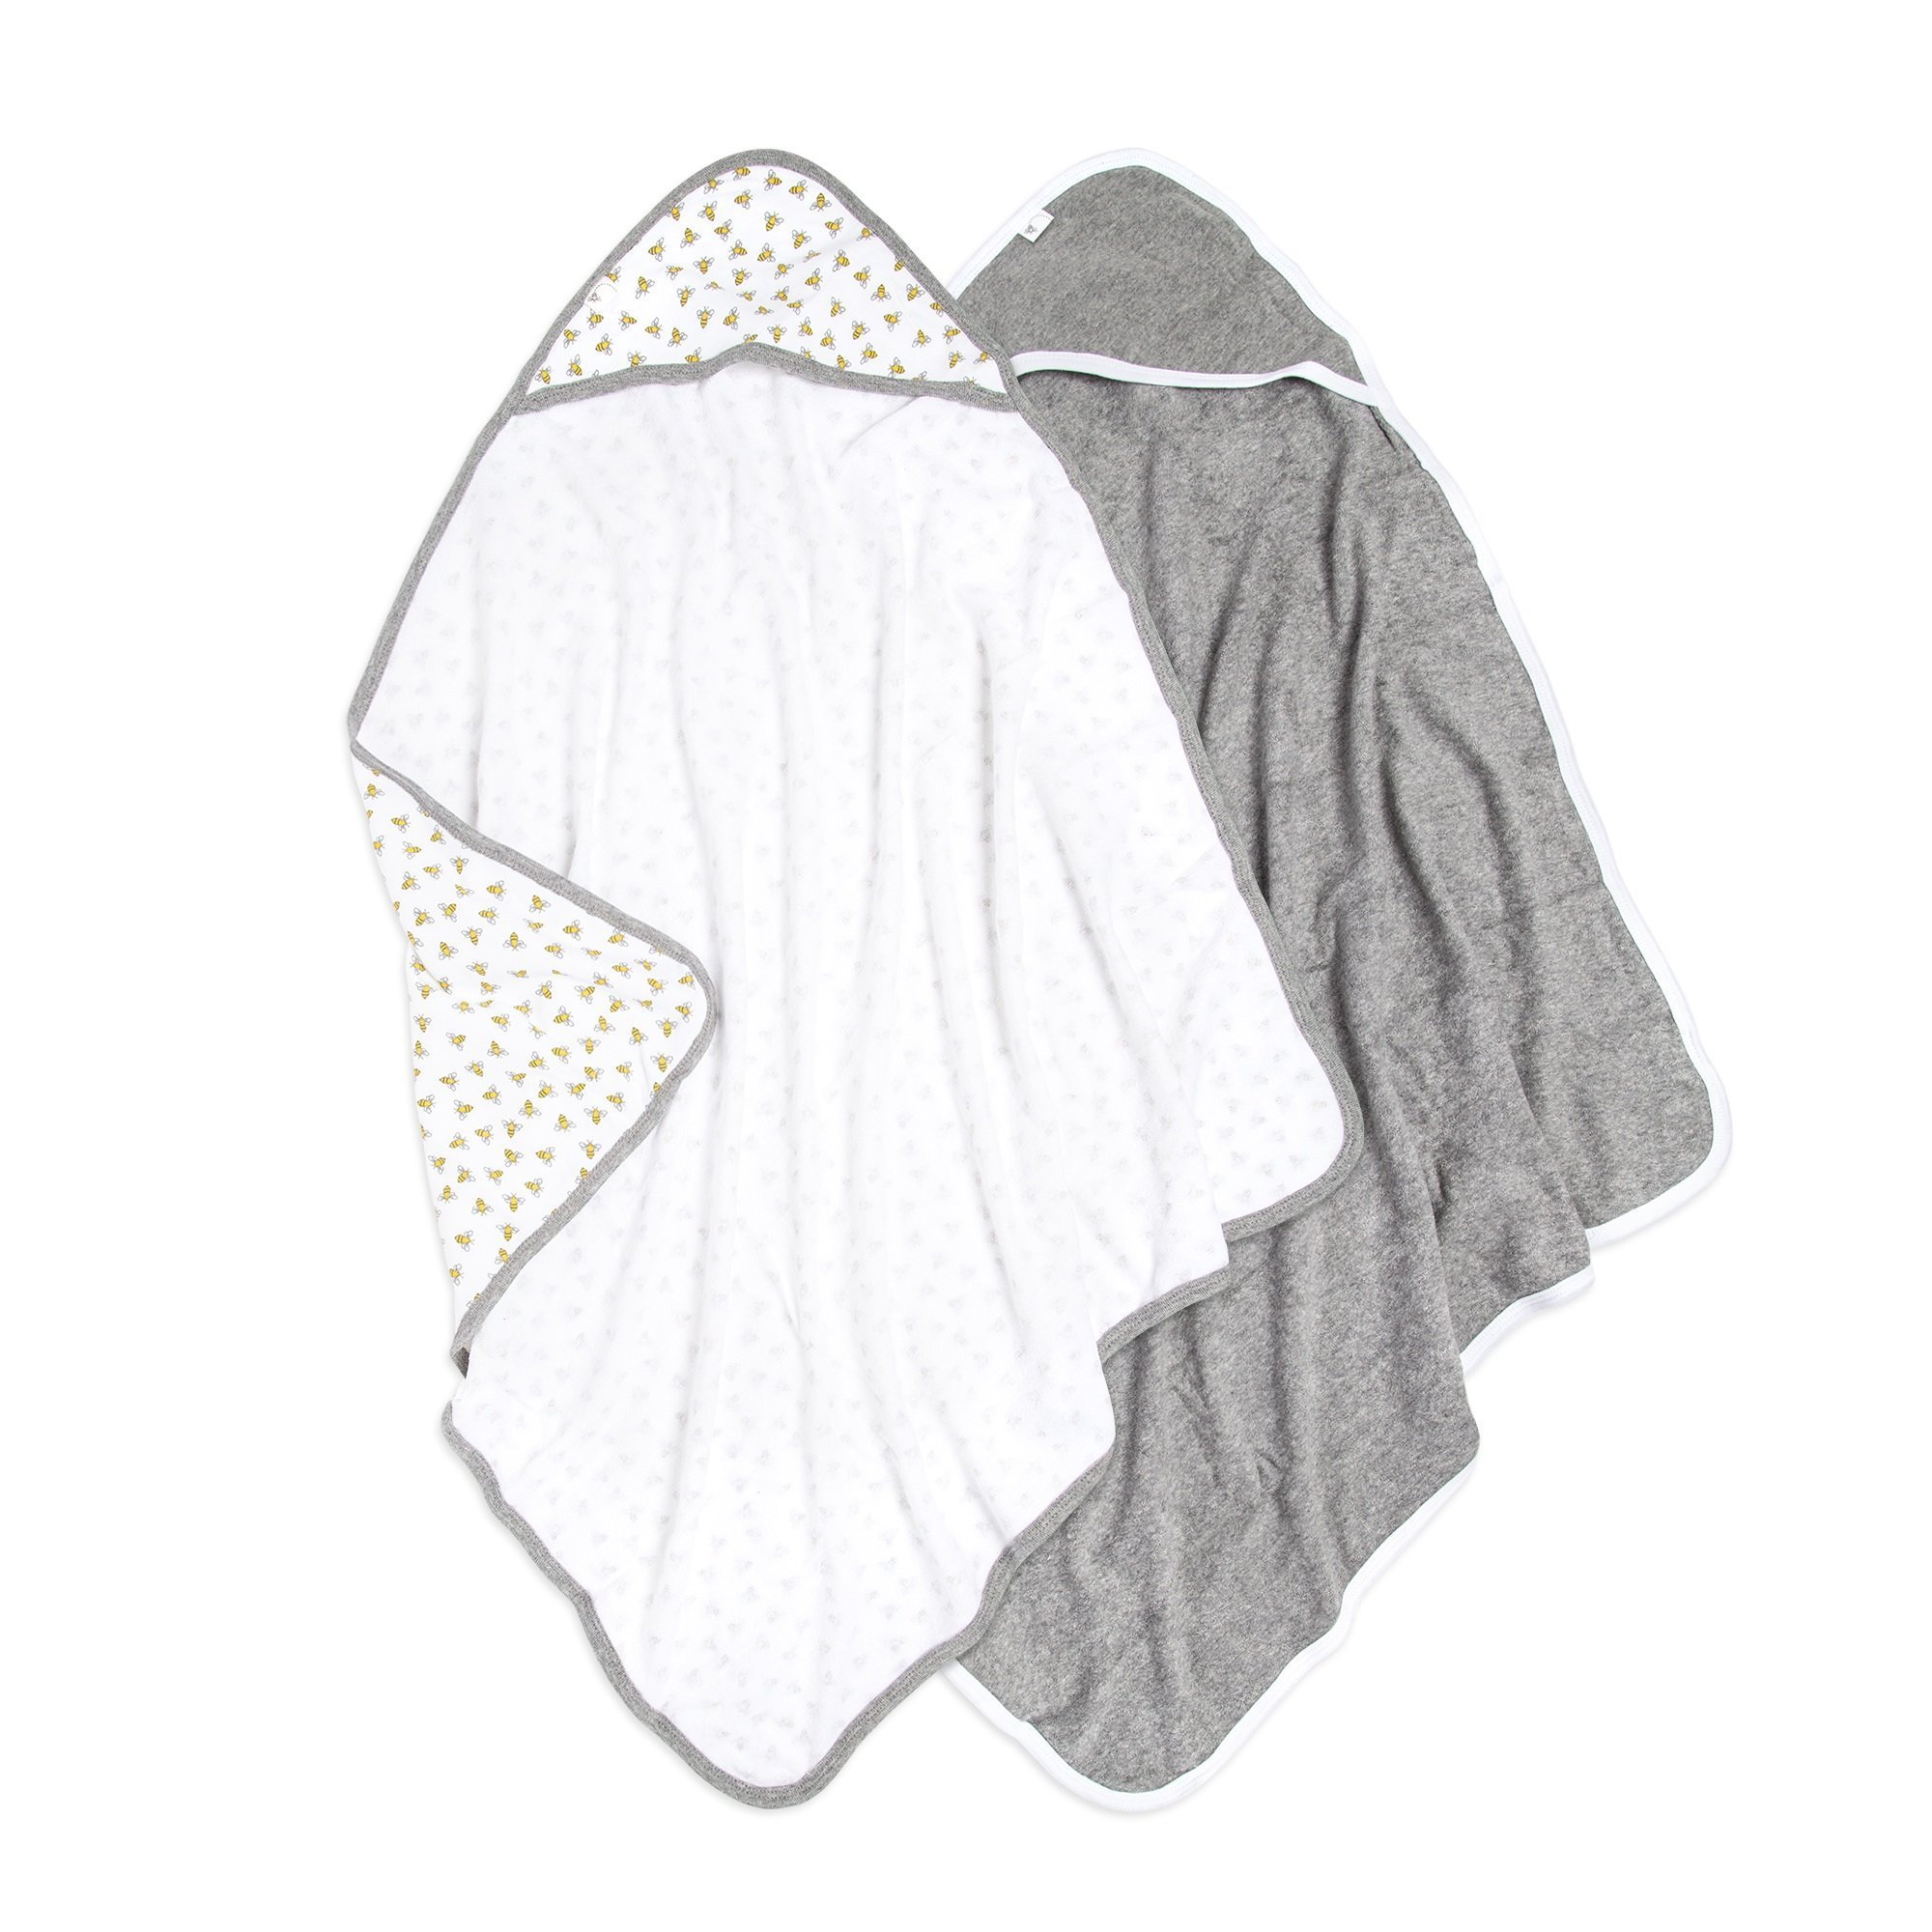 Burt's Bees Baby - Hooded Towels, Absorbent Knit Terry, Super Soft Single Ply, 100% Organic Cotton (Honey Bee/Grey, 2-Pack) by Burt's Bees Baby